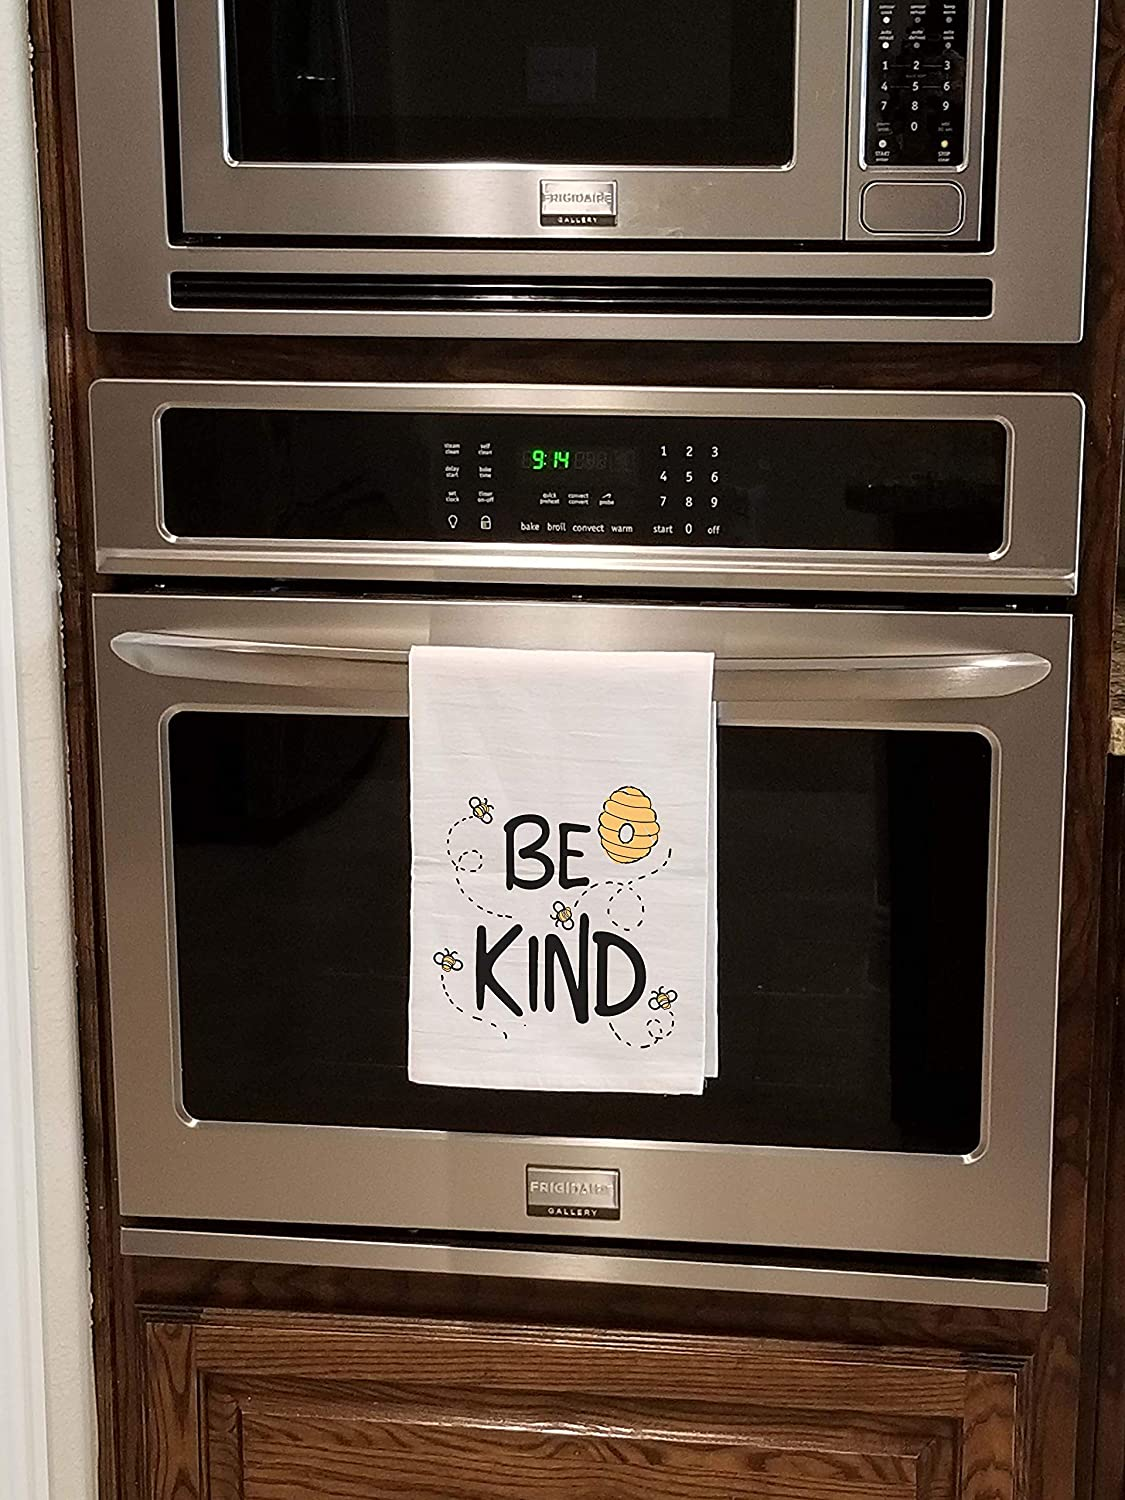 100/% Cotton Honey Dew Gifts Be Kind Flour Sack Towel 27 x 27 Inches Multi-Purpose Kitchen Dish Towel Highly Absorbent